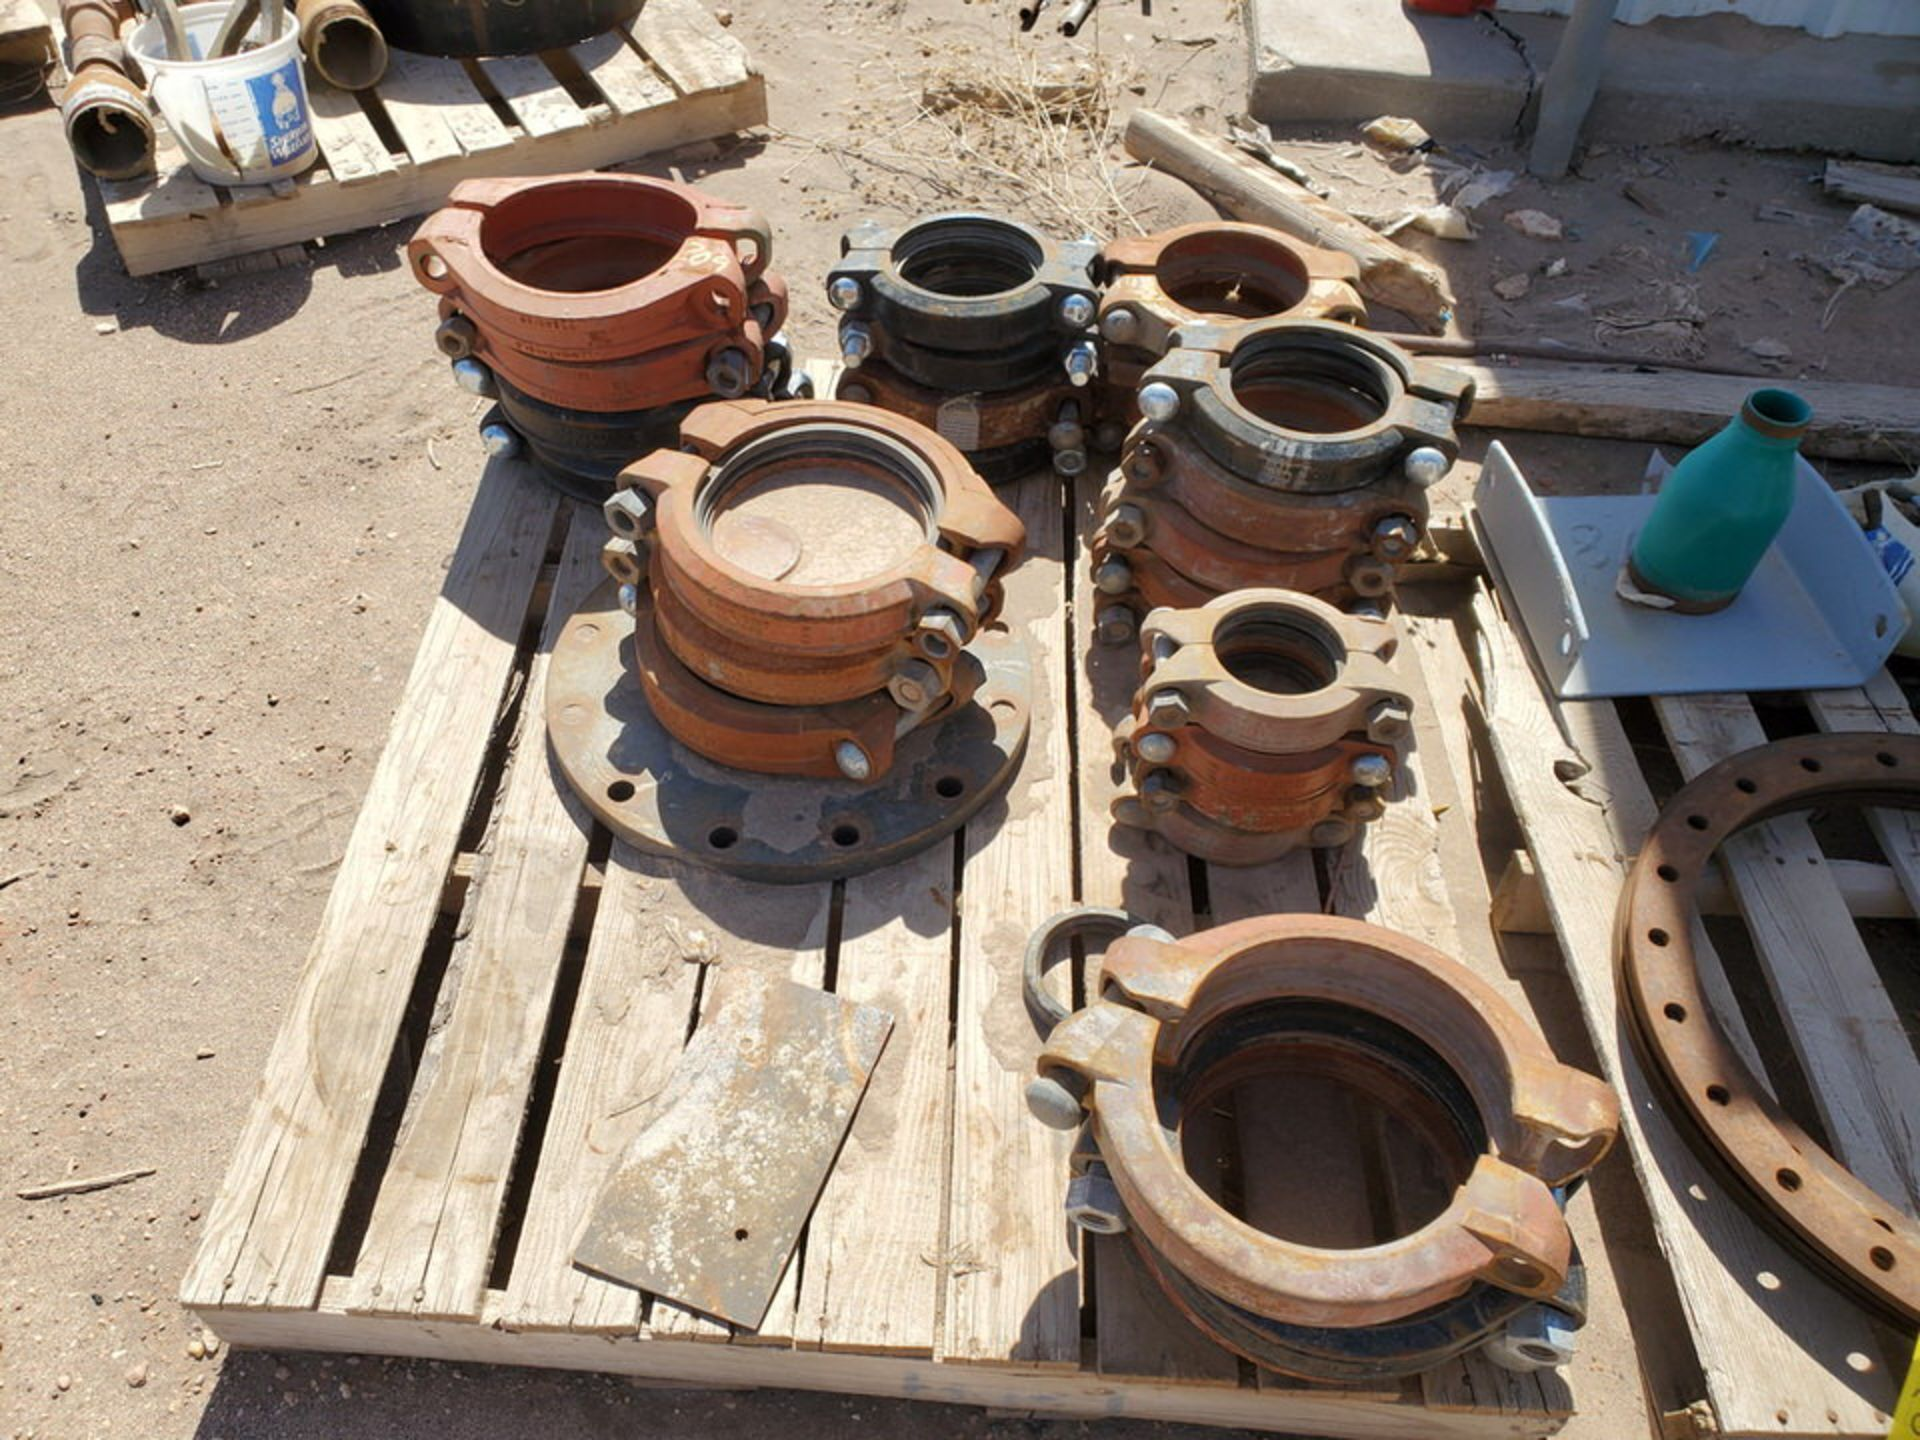 Assorted Fittings To Include But Not Limited To: Assorted Flanges, Caps, Couplings, etc.; Size - Image 7 of 14